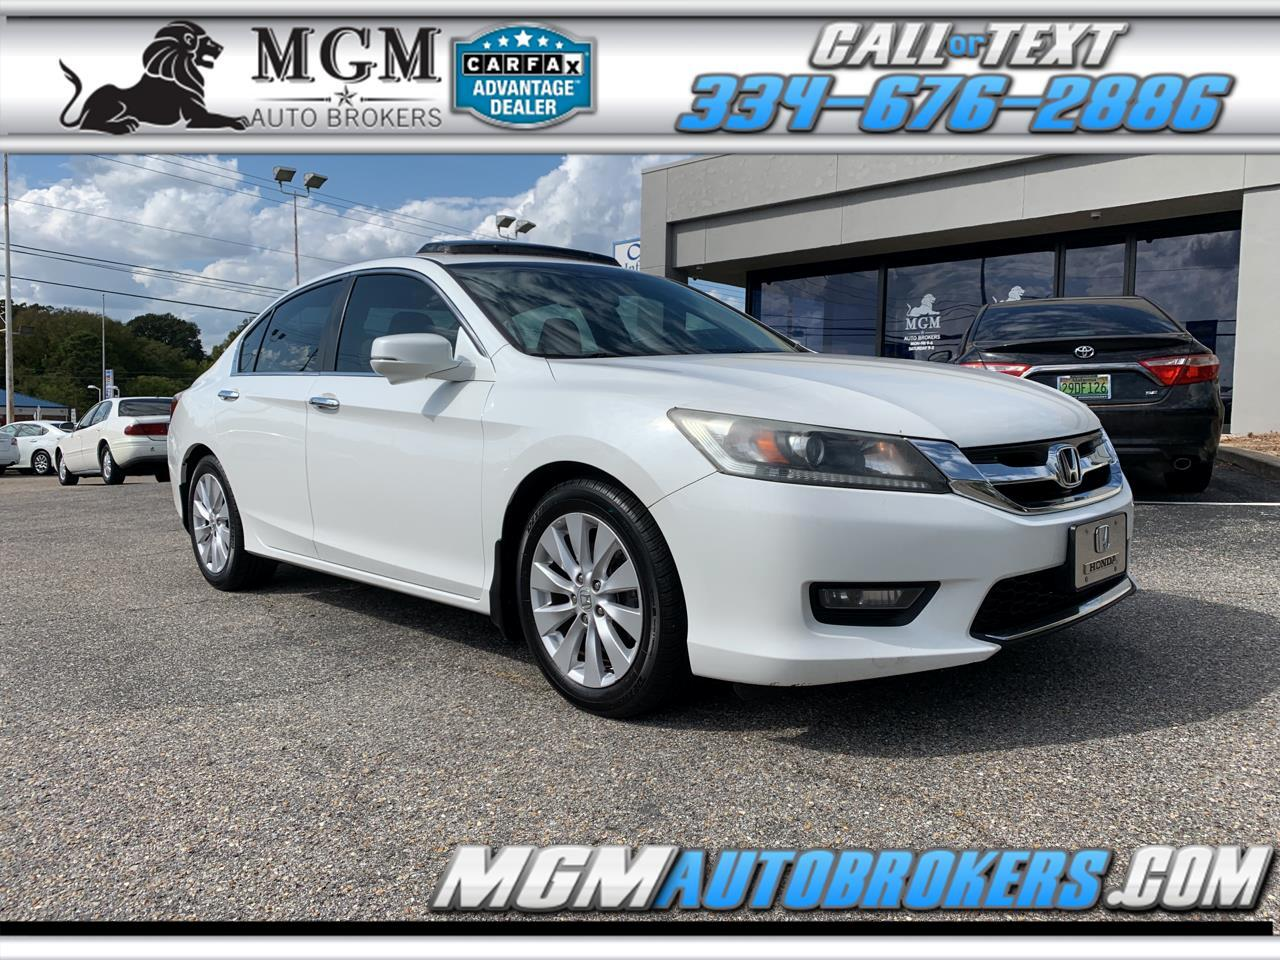 2014 Honda Accord Sedan EXL